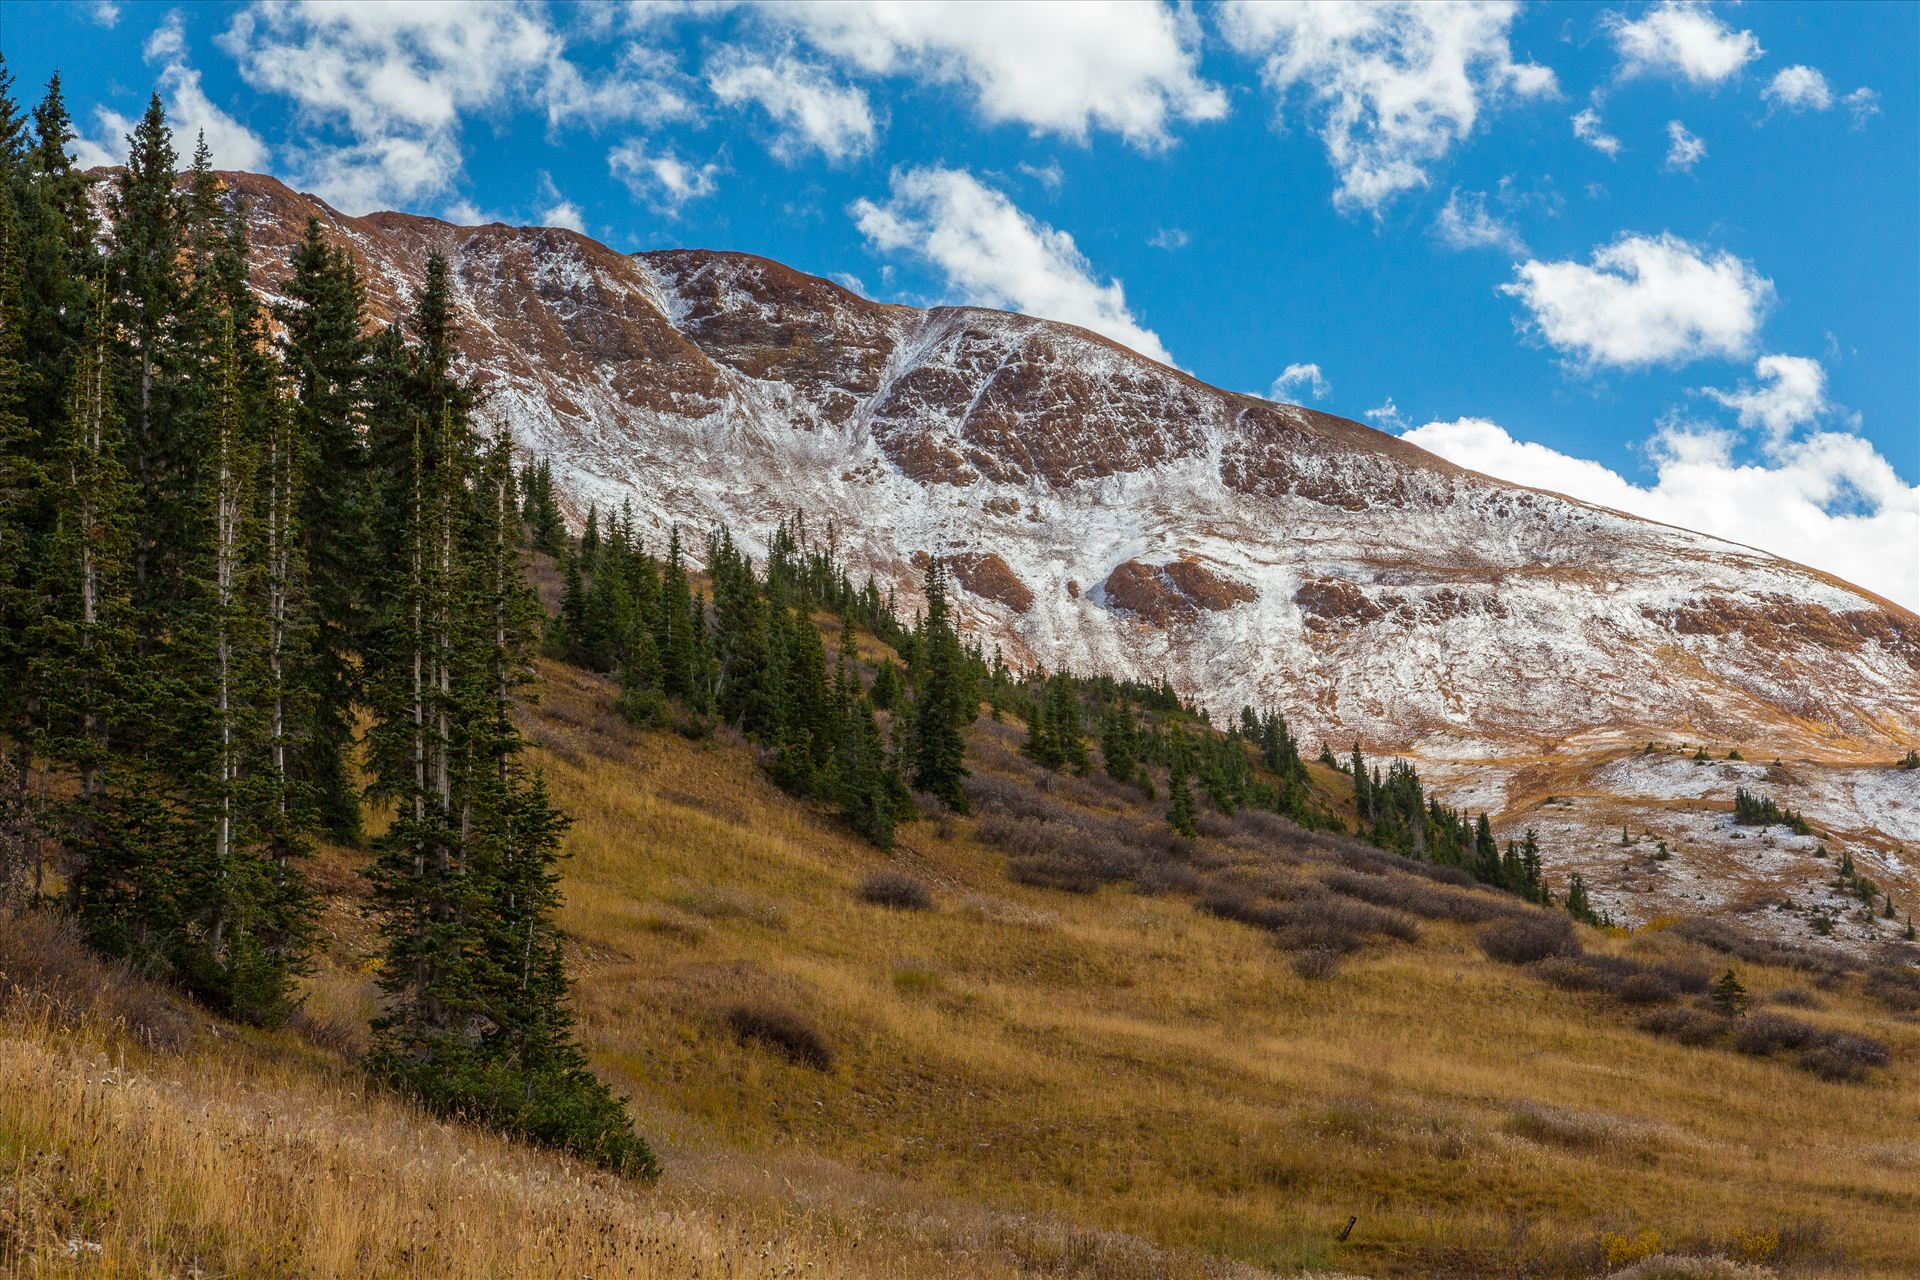 Snow at Mount Baldy Wilderness - Snow on the peaks at the Mount Baldy Wilderness area, near the summit. Taken from Shofield Pass in Crested Butte, Colorado. by D Scott Smith